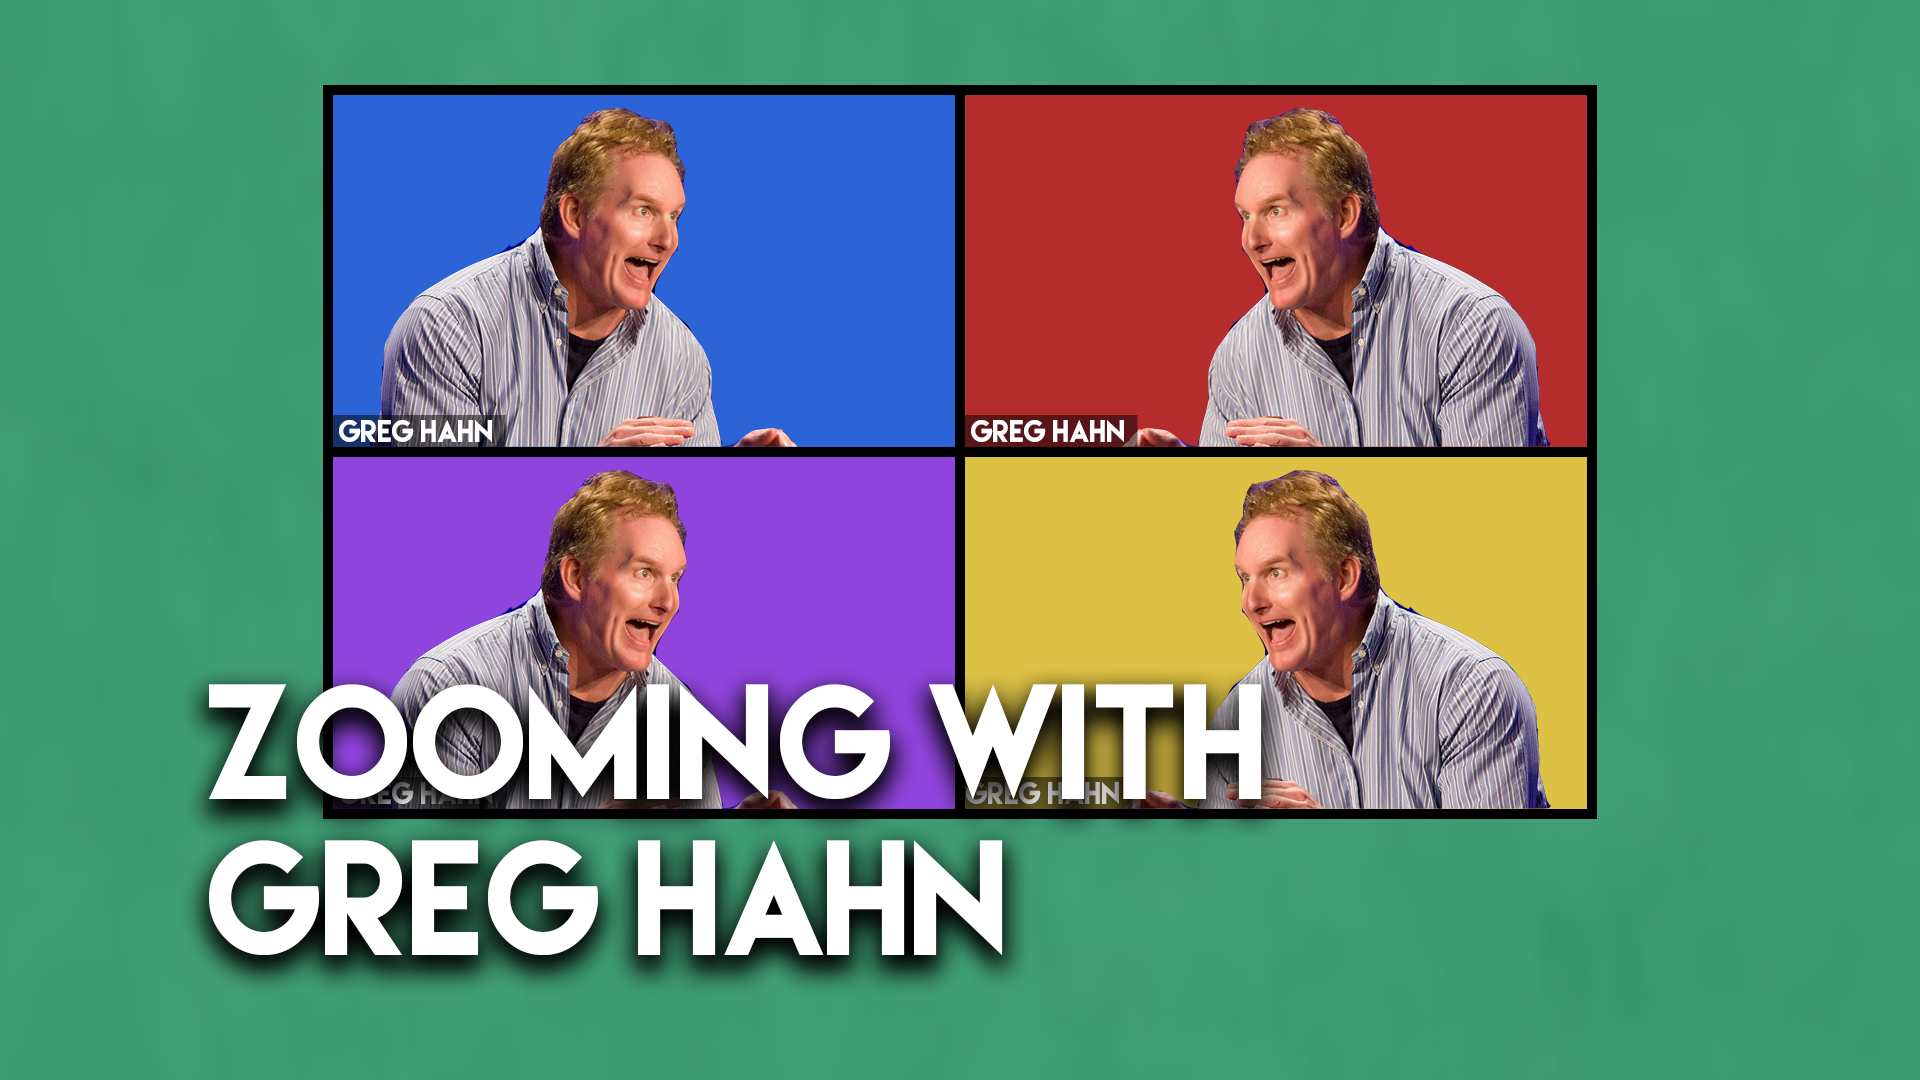 Zooming with Greg Hahn